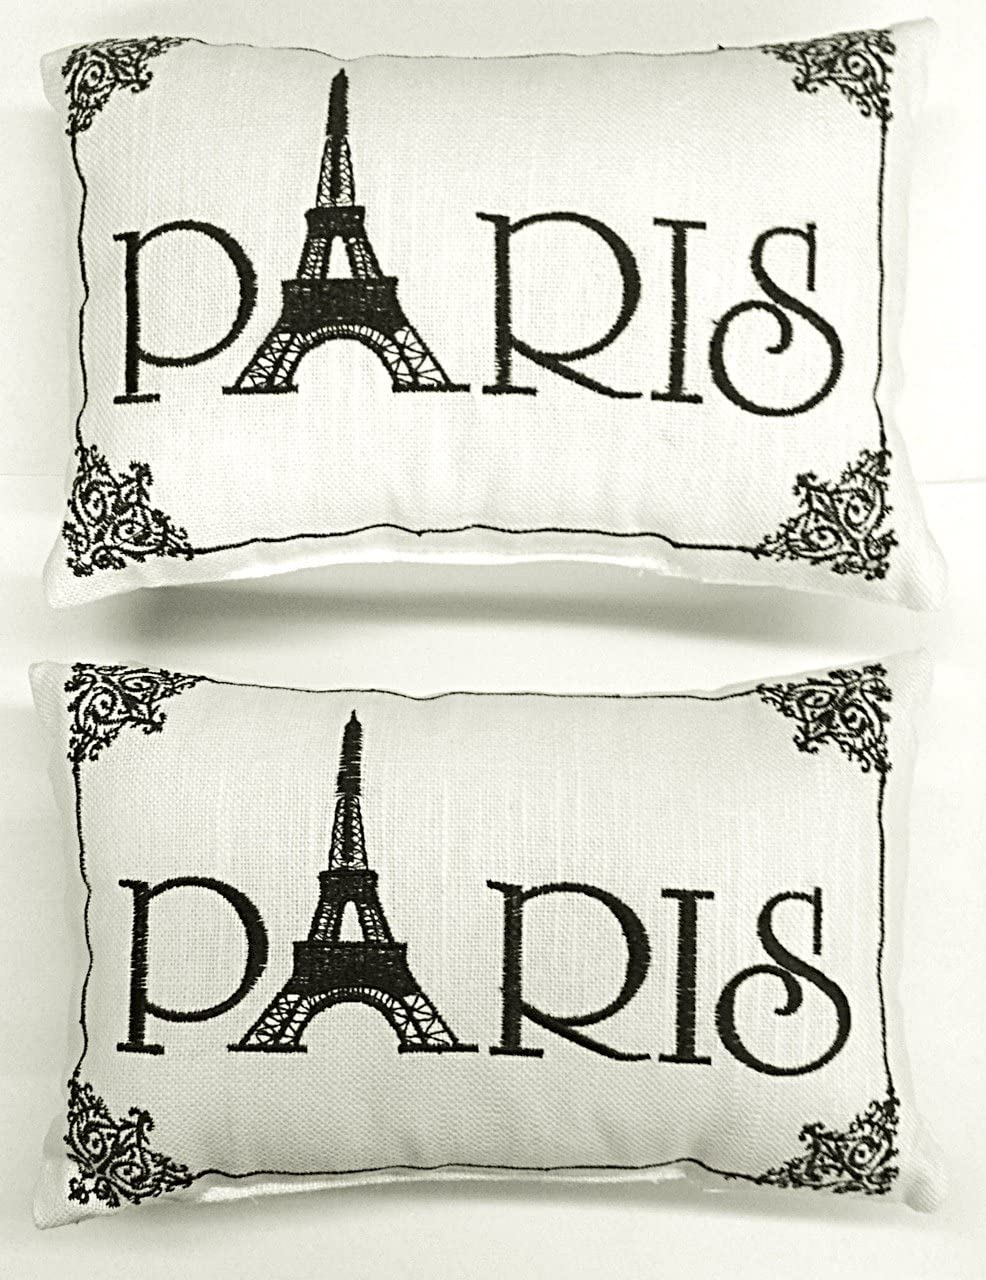 C F Paris – Small Cute Accent Pillows – Set of 2- Embroidered with Ornate Stitching